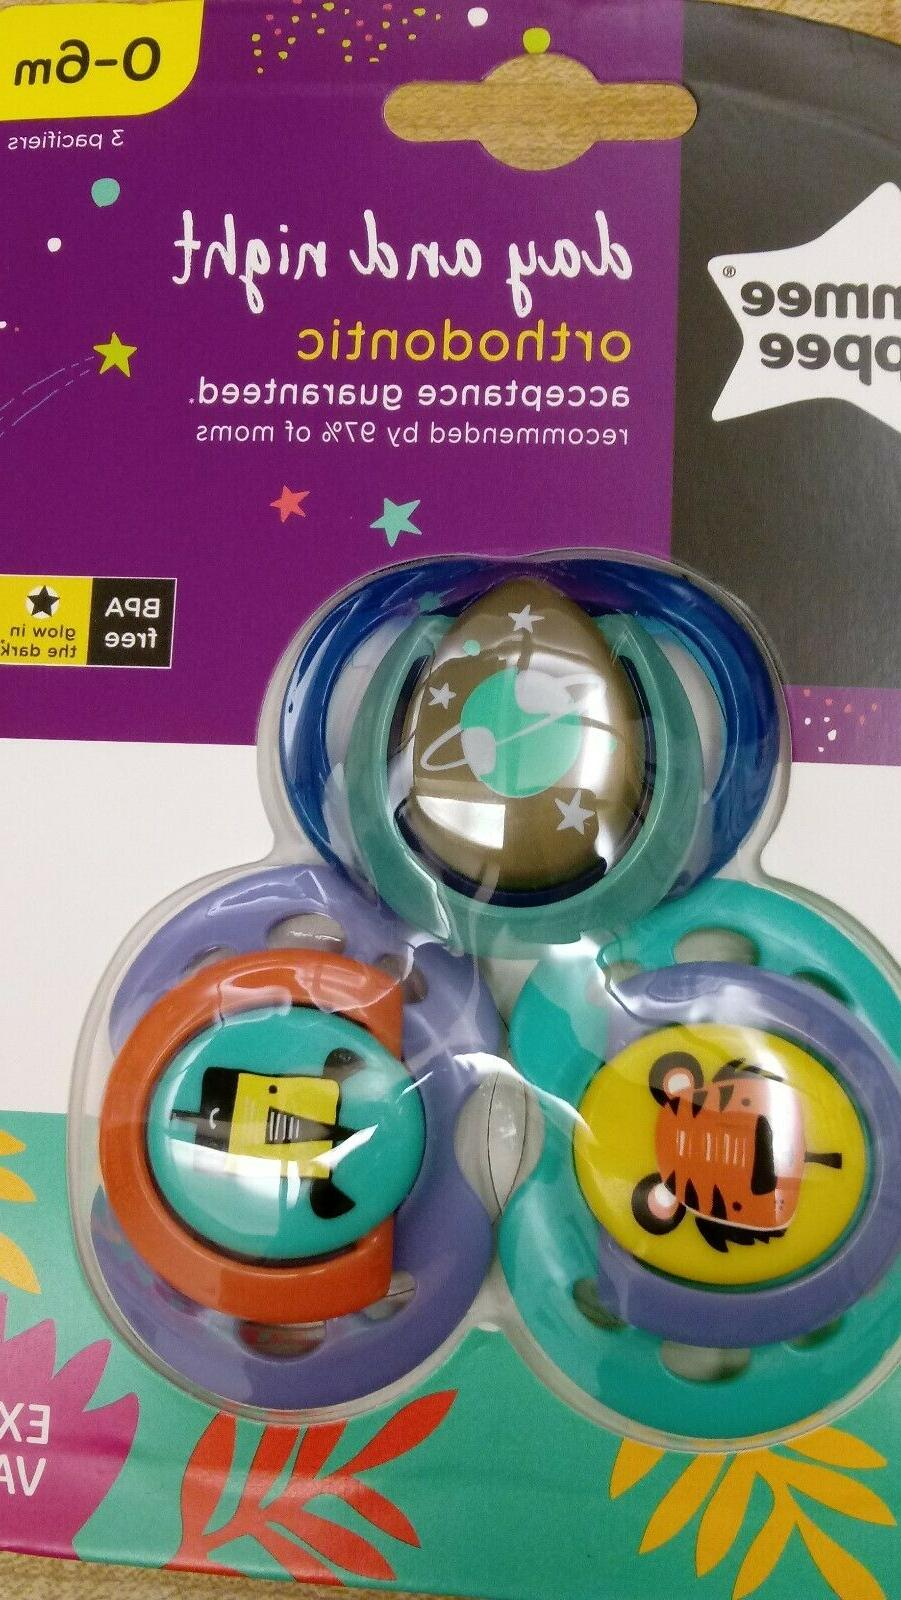 Tommee Tippee and Night BPA Free Glow in the